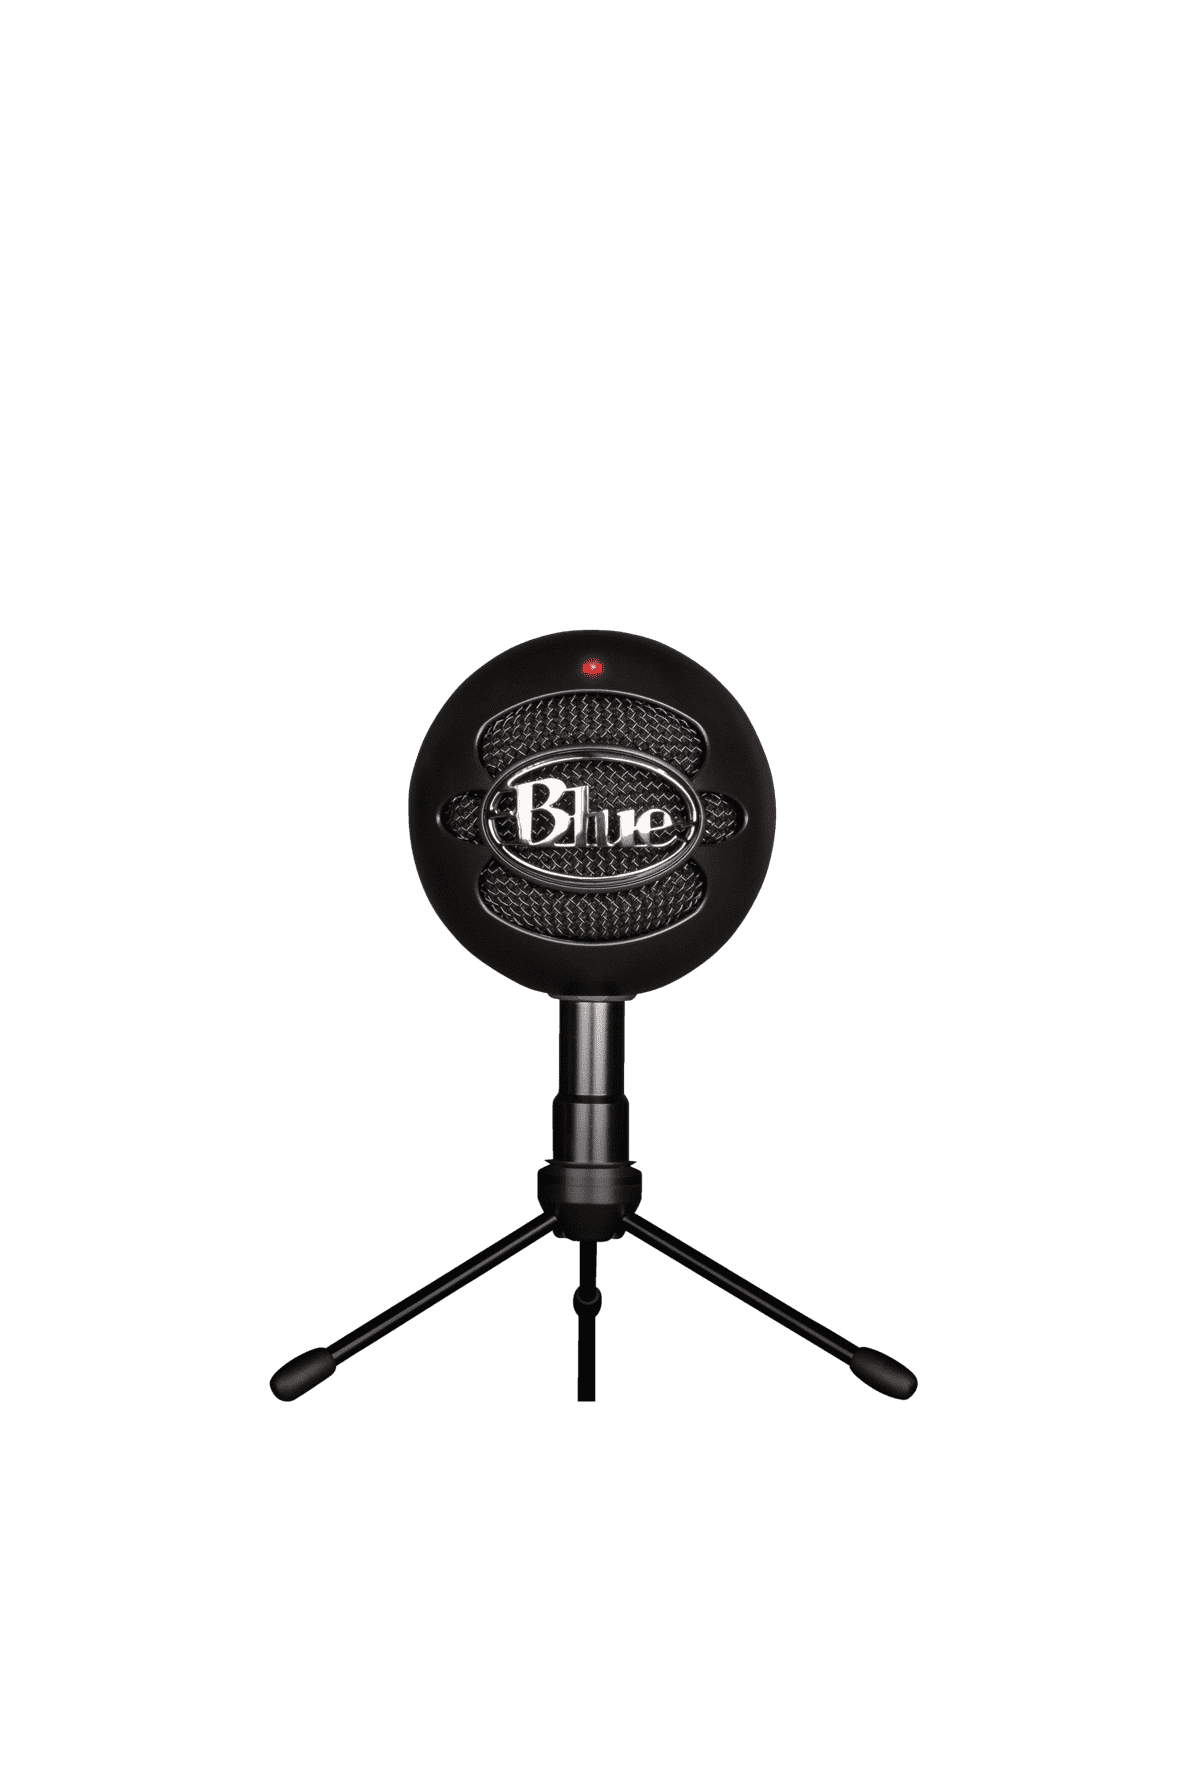 BLUE MICROPHONES Snowball iCE Black USB Mikrofon Schwarz